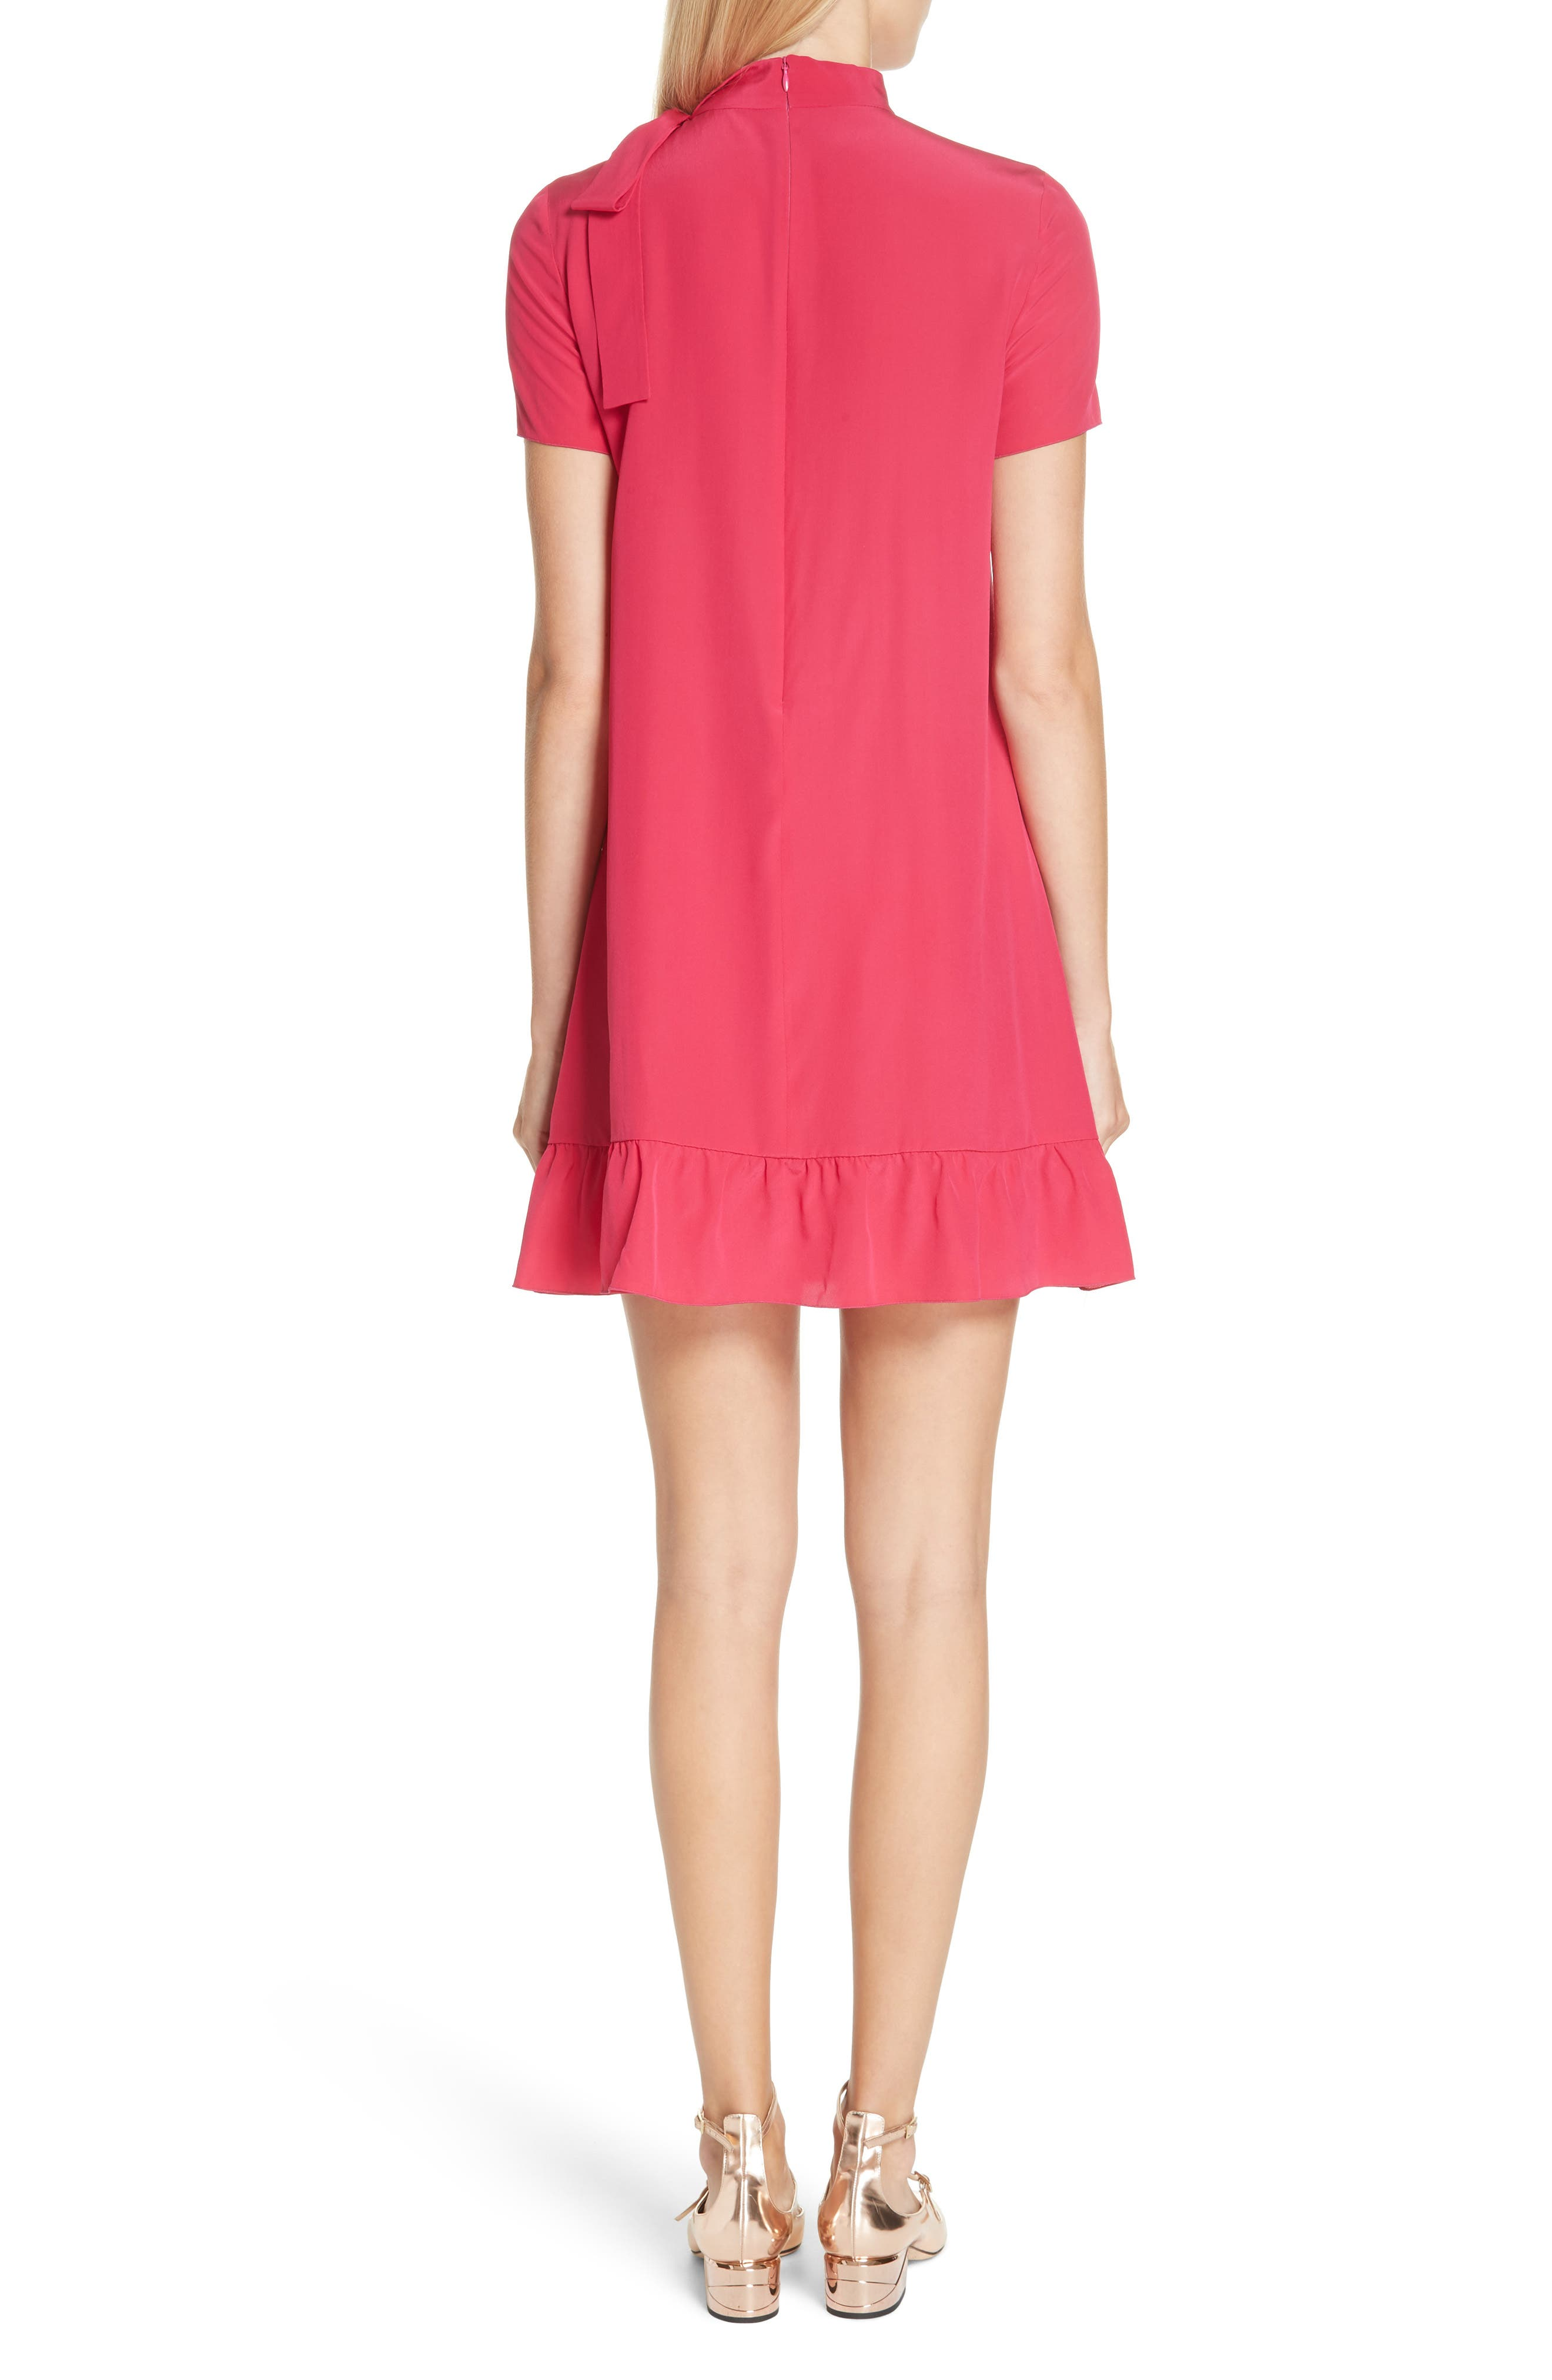 RED VALENTINO,                             Tie Neck Pleated Silk Dress,                             Alternate thumbnail 2, color,                             600